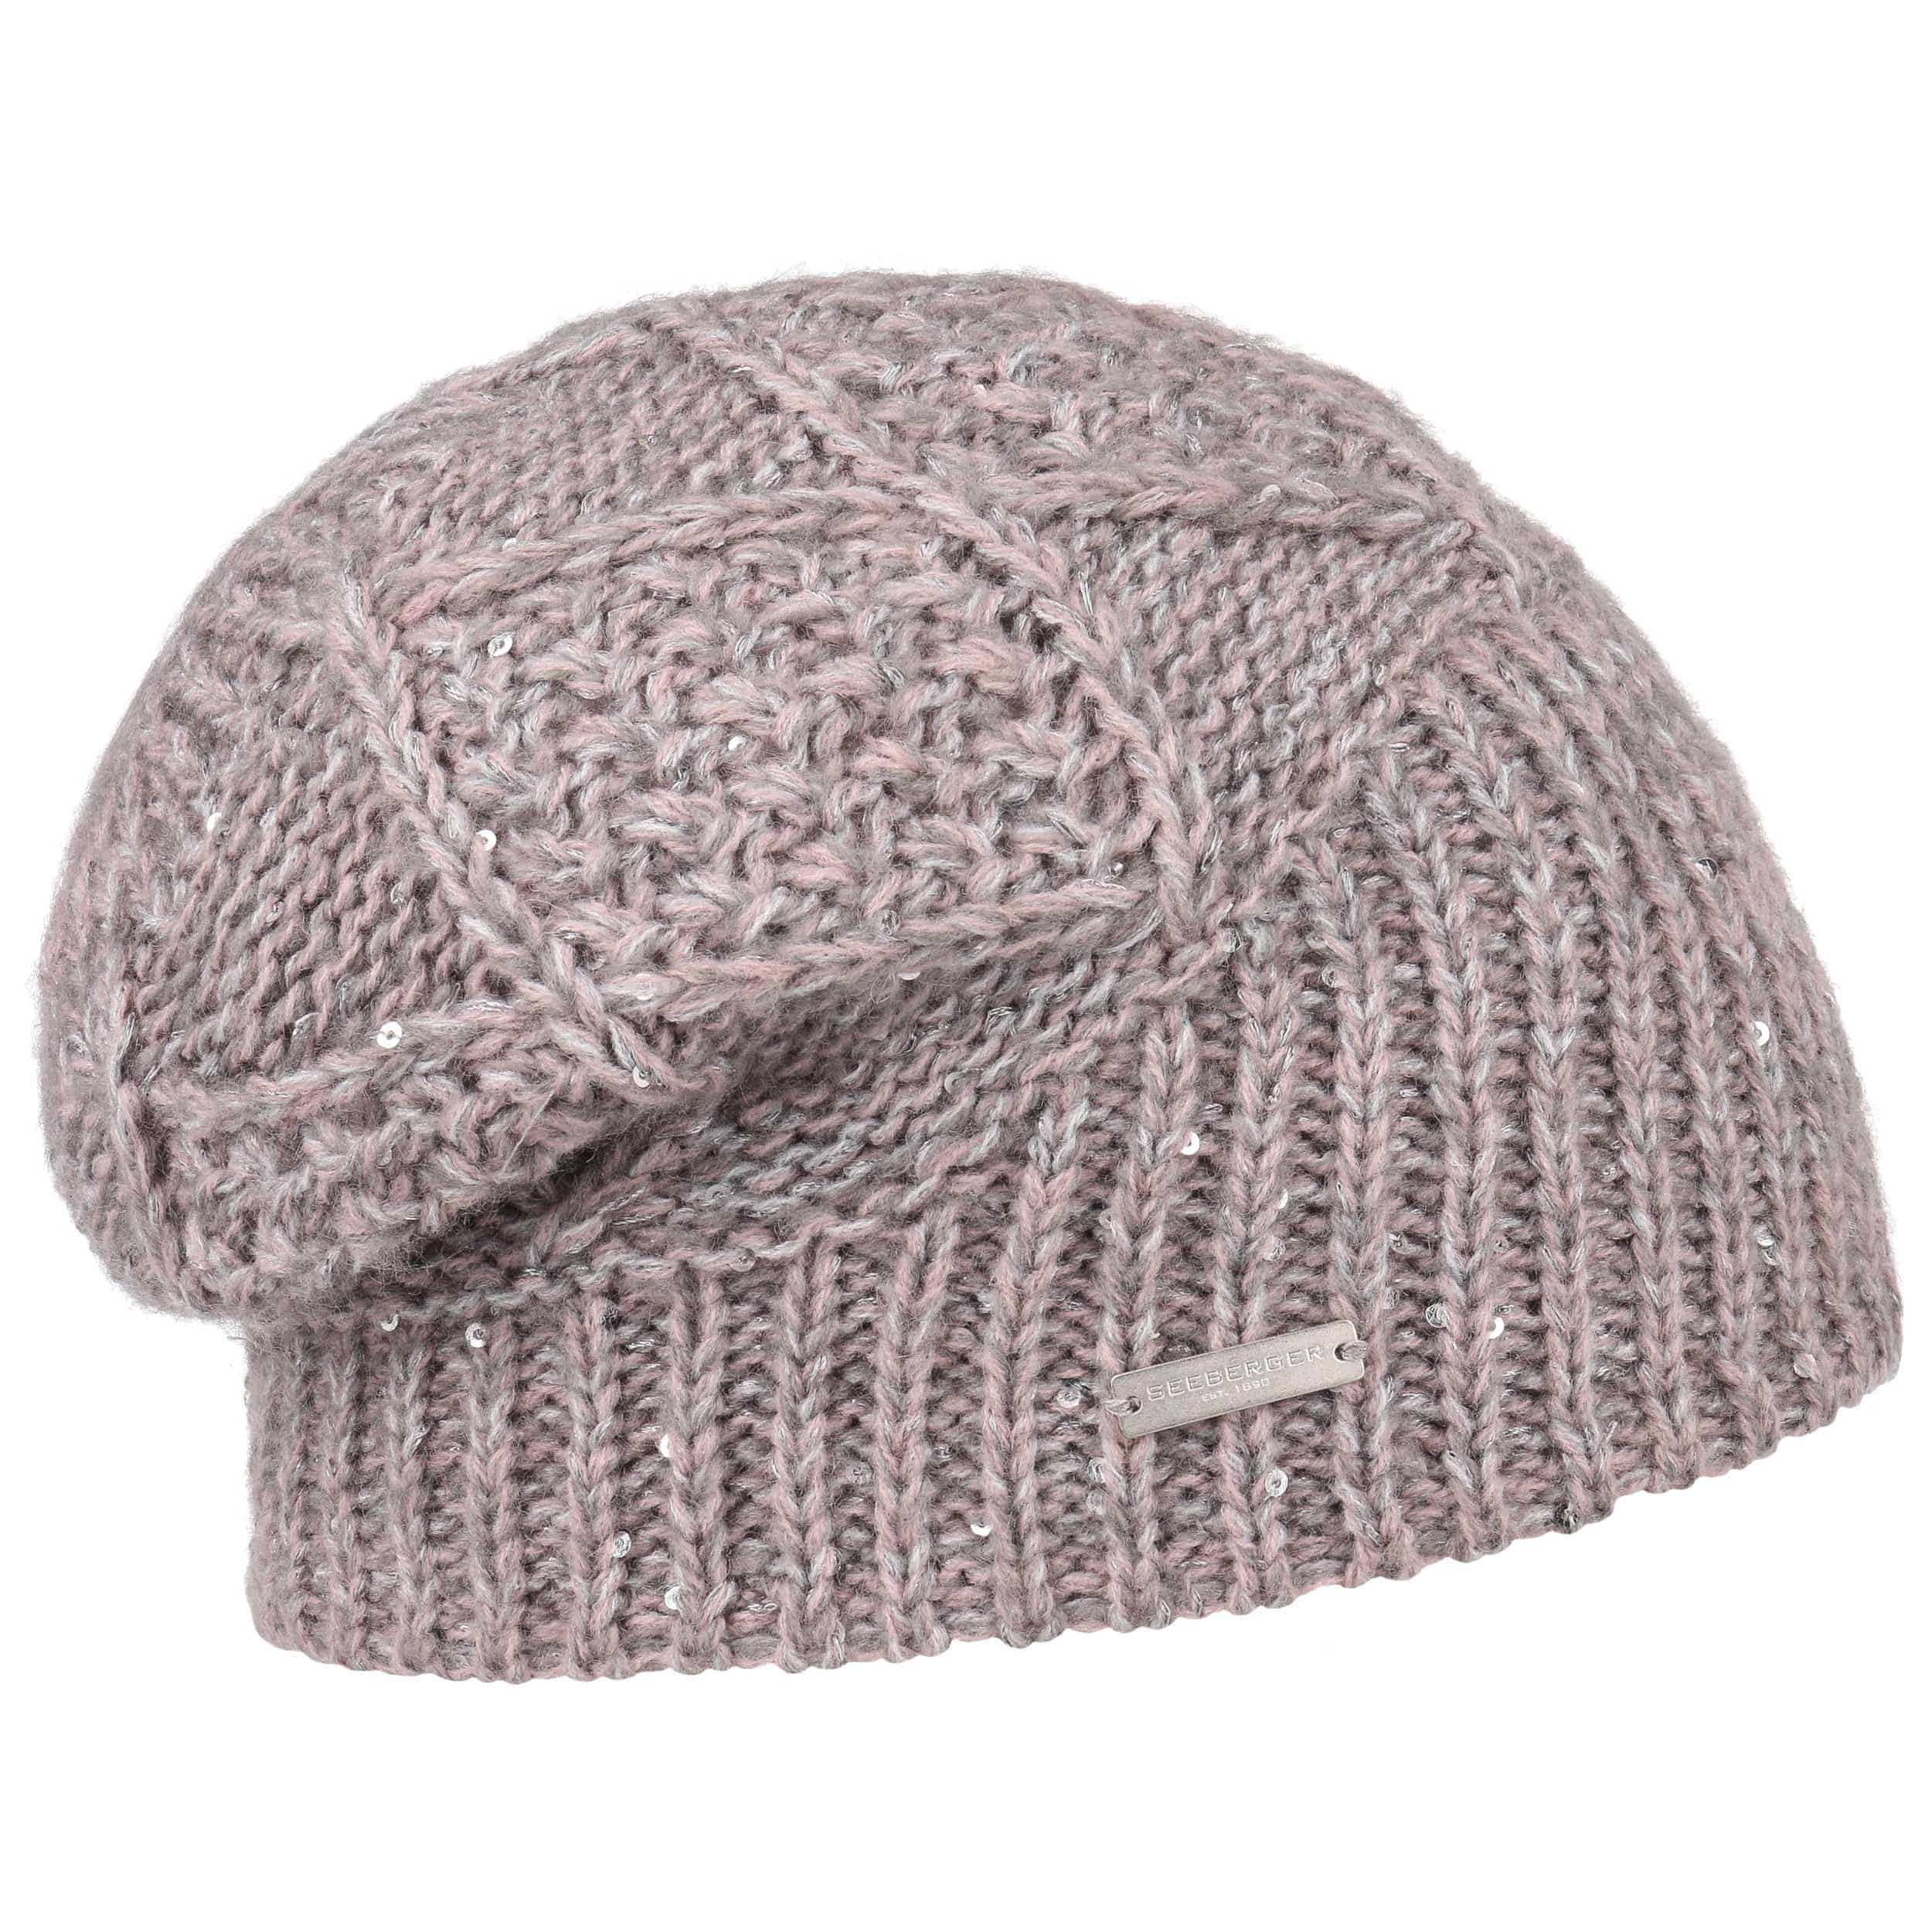 3a09a8974de ... Cable Knit Pattern Beanie Hat by Seeberger - rose 5 ...